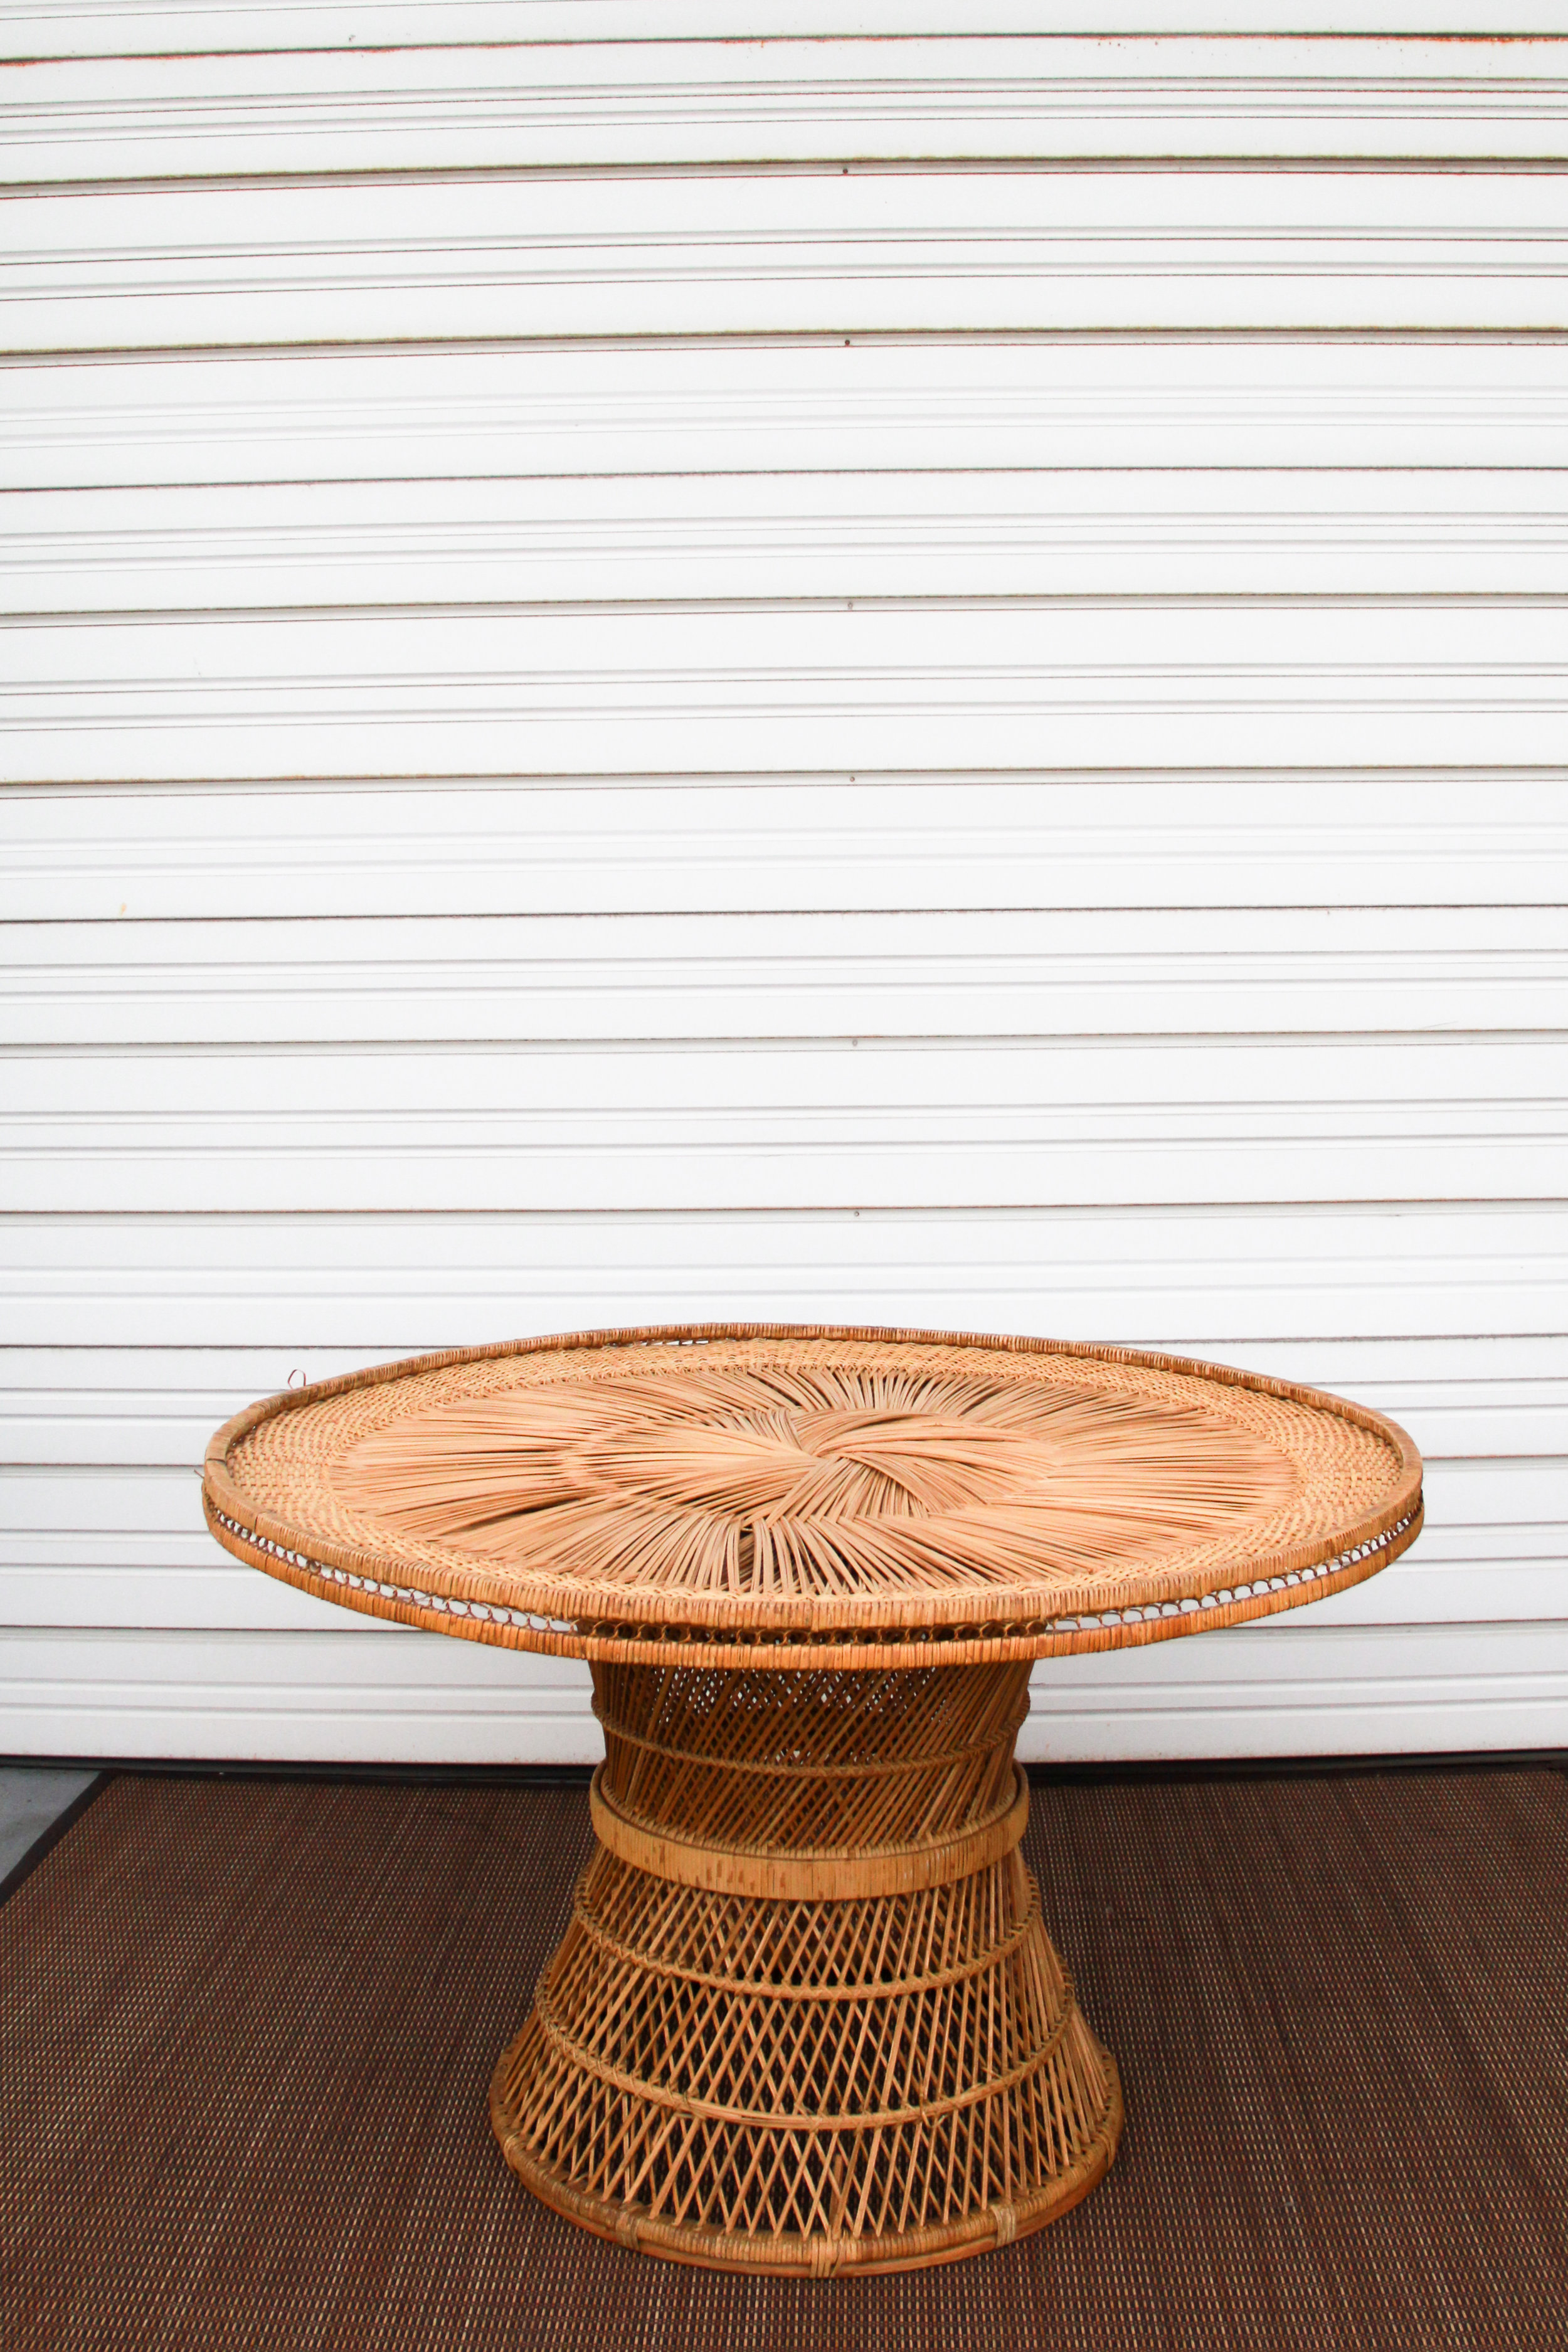 Wicker Round Table